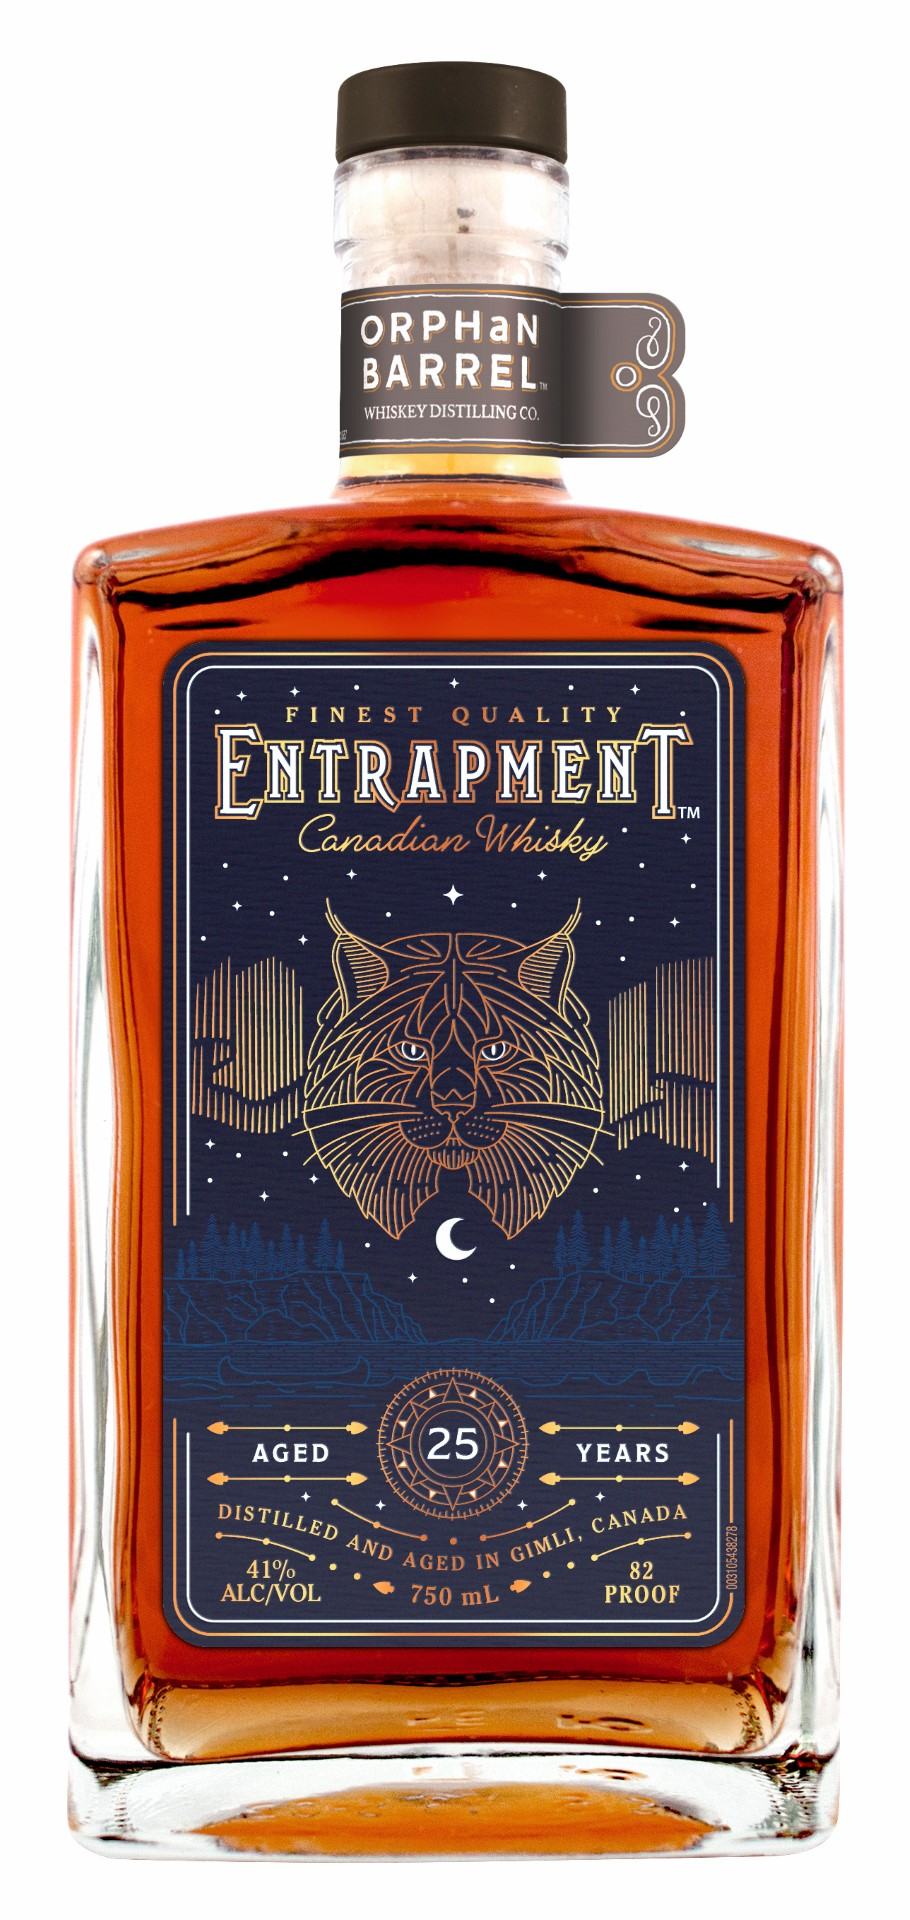 Diageo Orphan Barrel Project Entrapment Canadian Whisky 25 Years Old